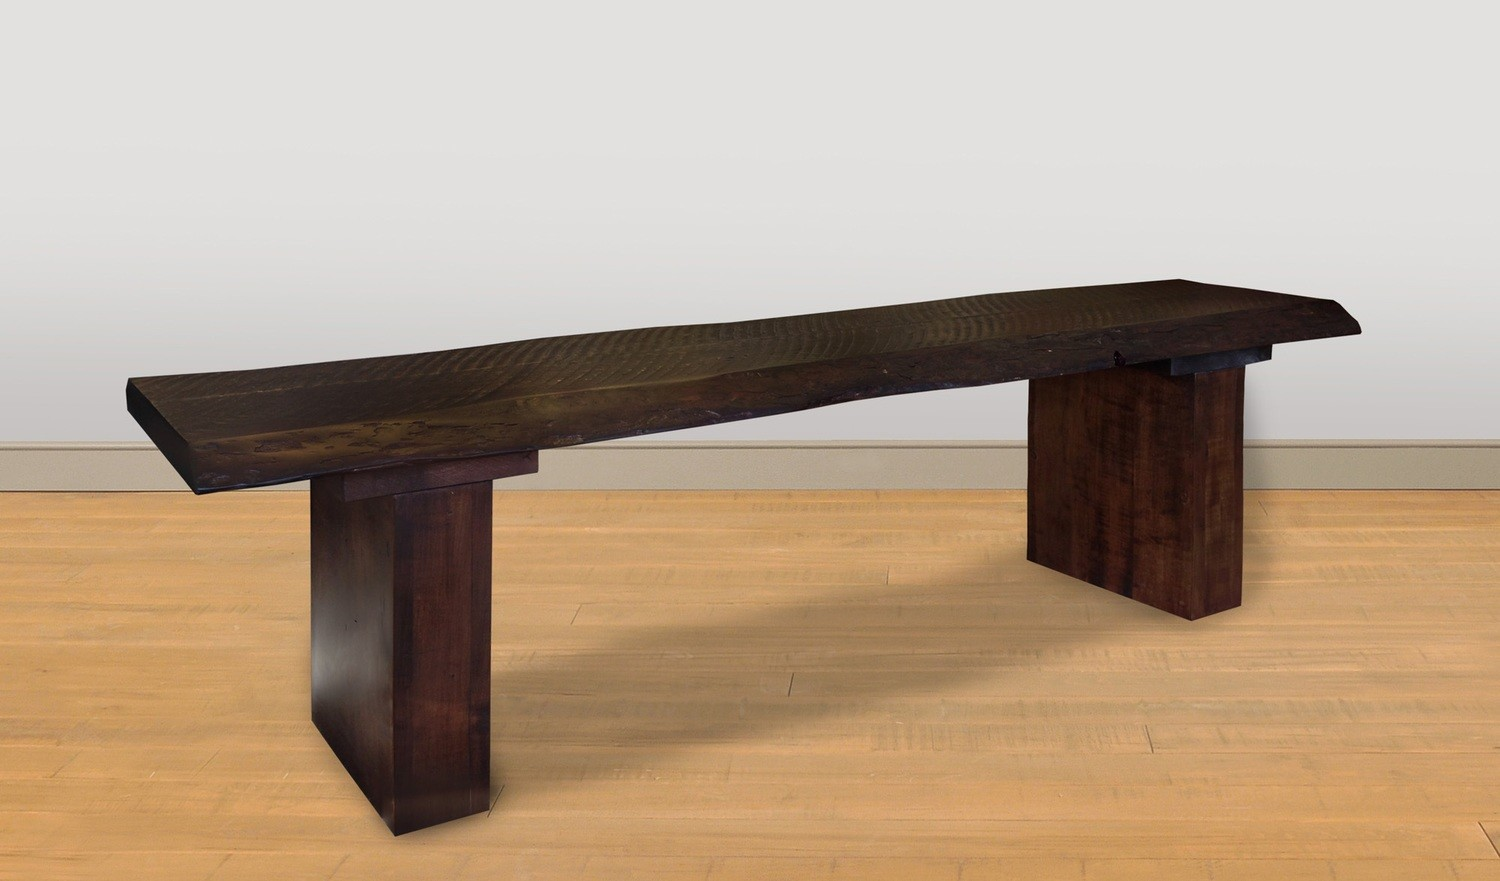 Live Edge Bench by Ruff Sawn